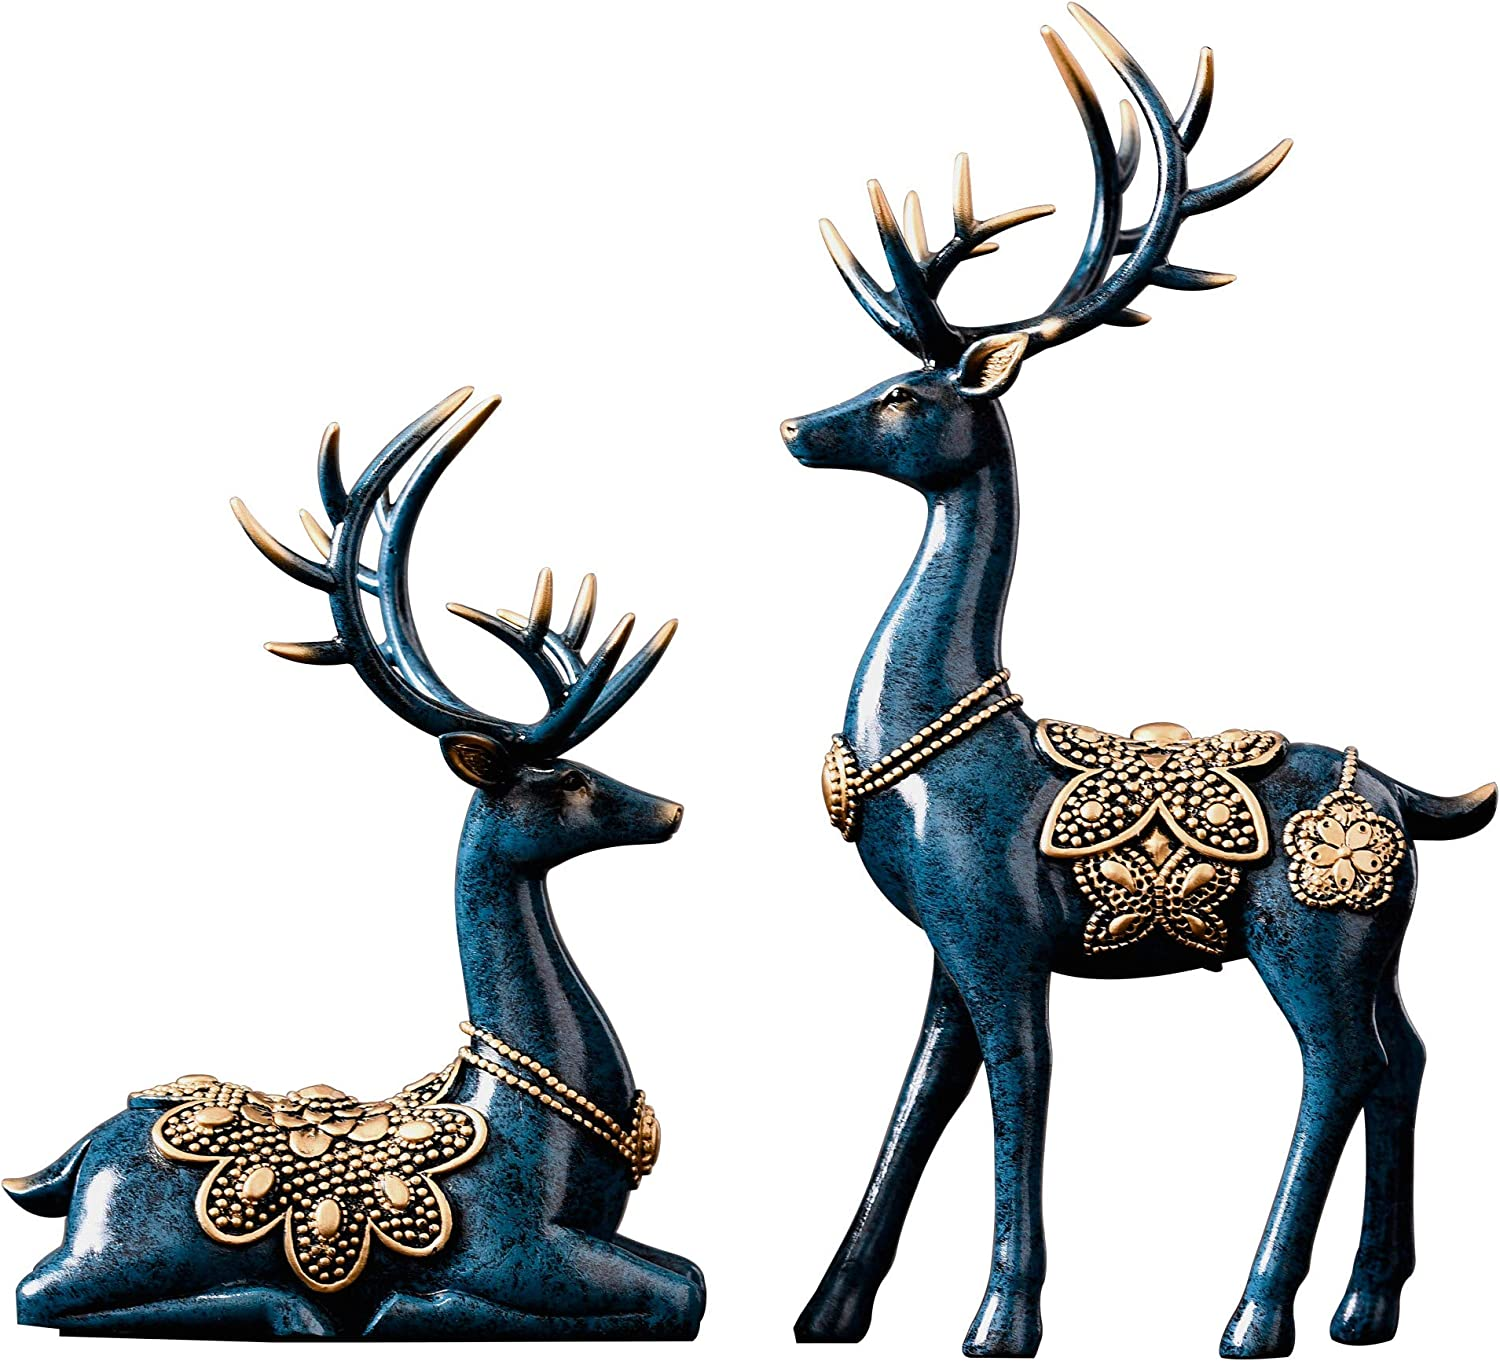 MAYIAHO Statues for Home Decor Figurines Sculptures, Deer Decorations Center Table Living Room Resin 2pcs, Small Shelf Accents Bookshelf Fireplace Tv Stand Items Christmas Reindeer Blue Unique.